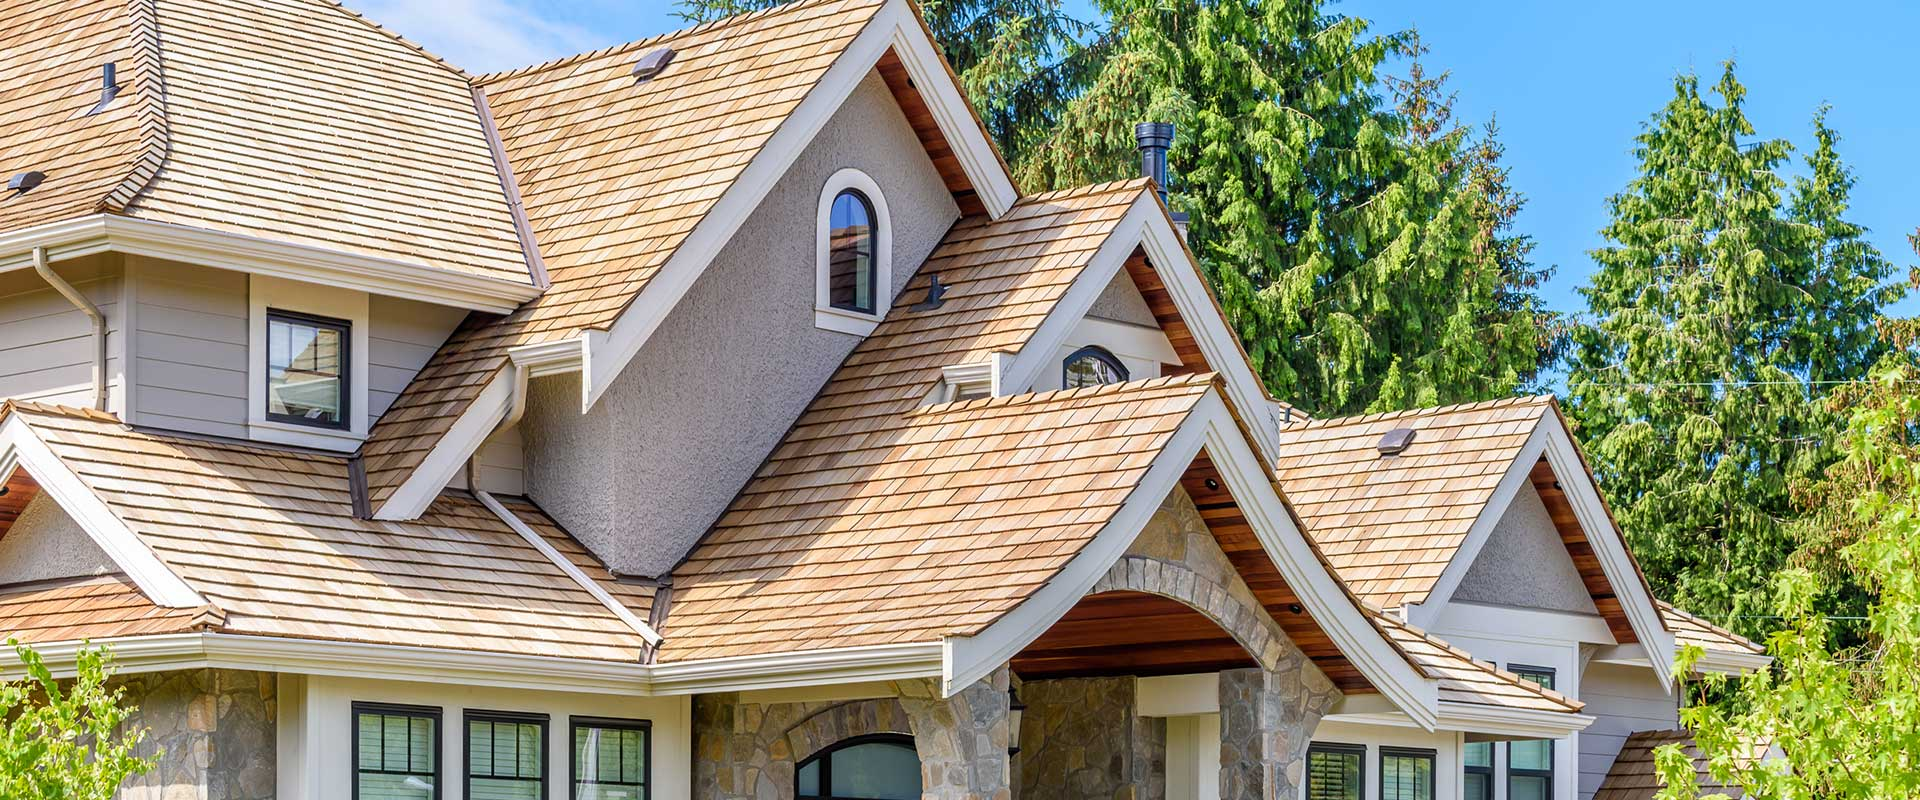 Roofing & Home Improvement